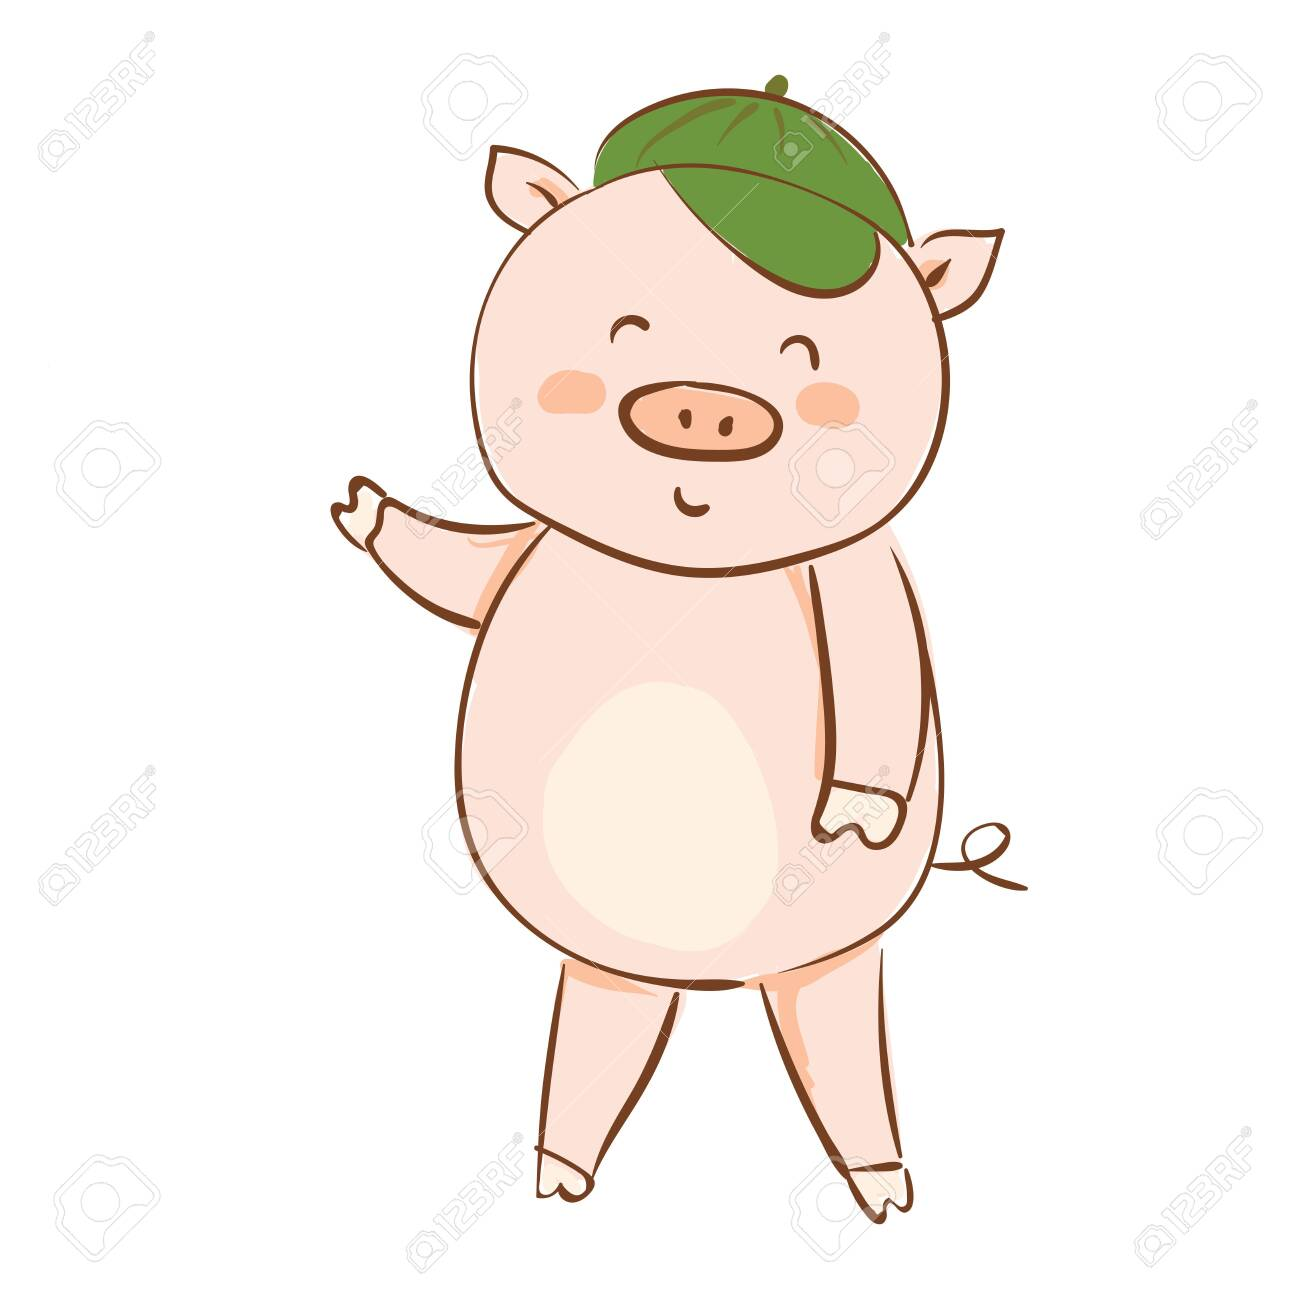 Drawing Of A Cartoon Pig In A Green Summer Cap Waving His Hand